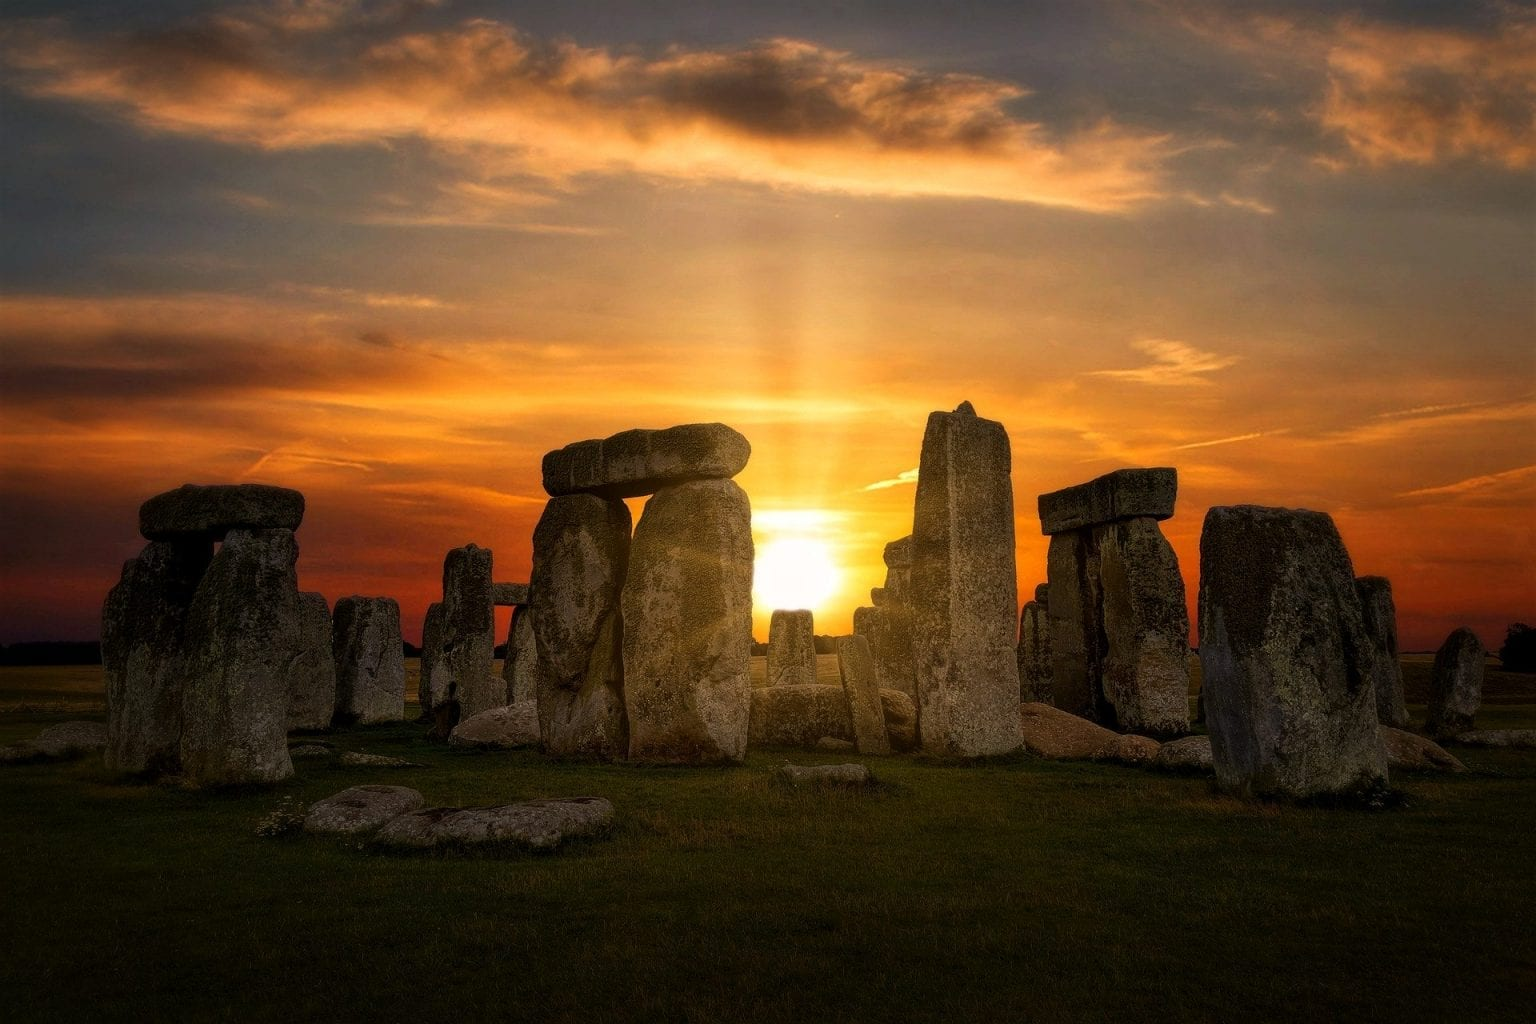 The summer solstice at the famous ancient monument of Stonehenge.